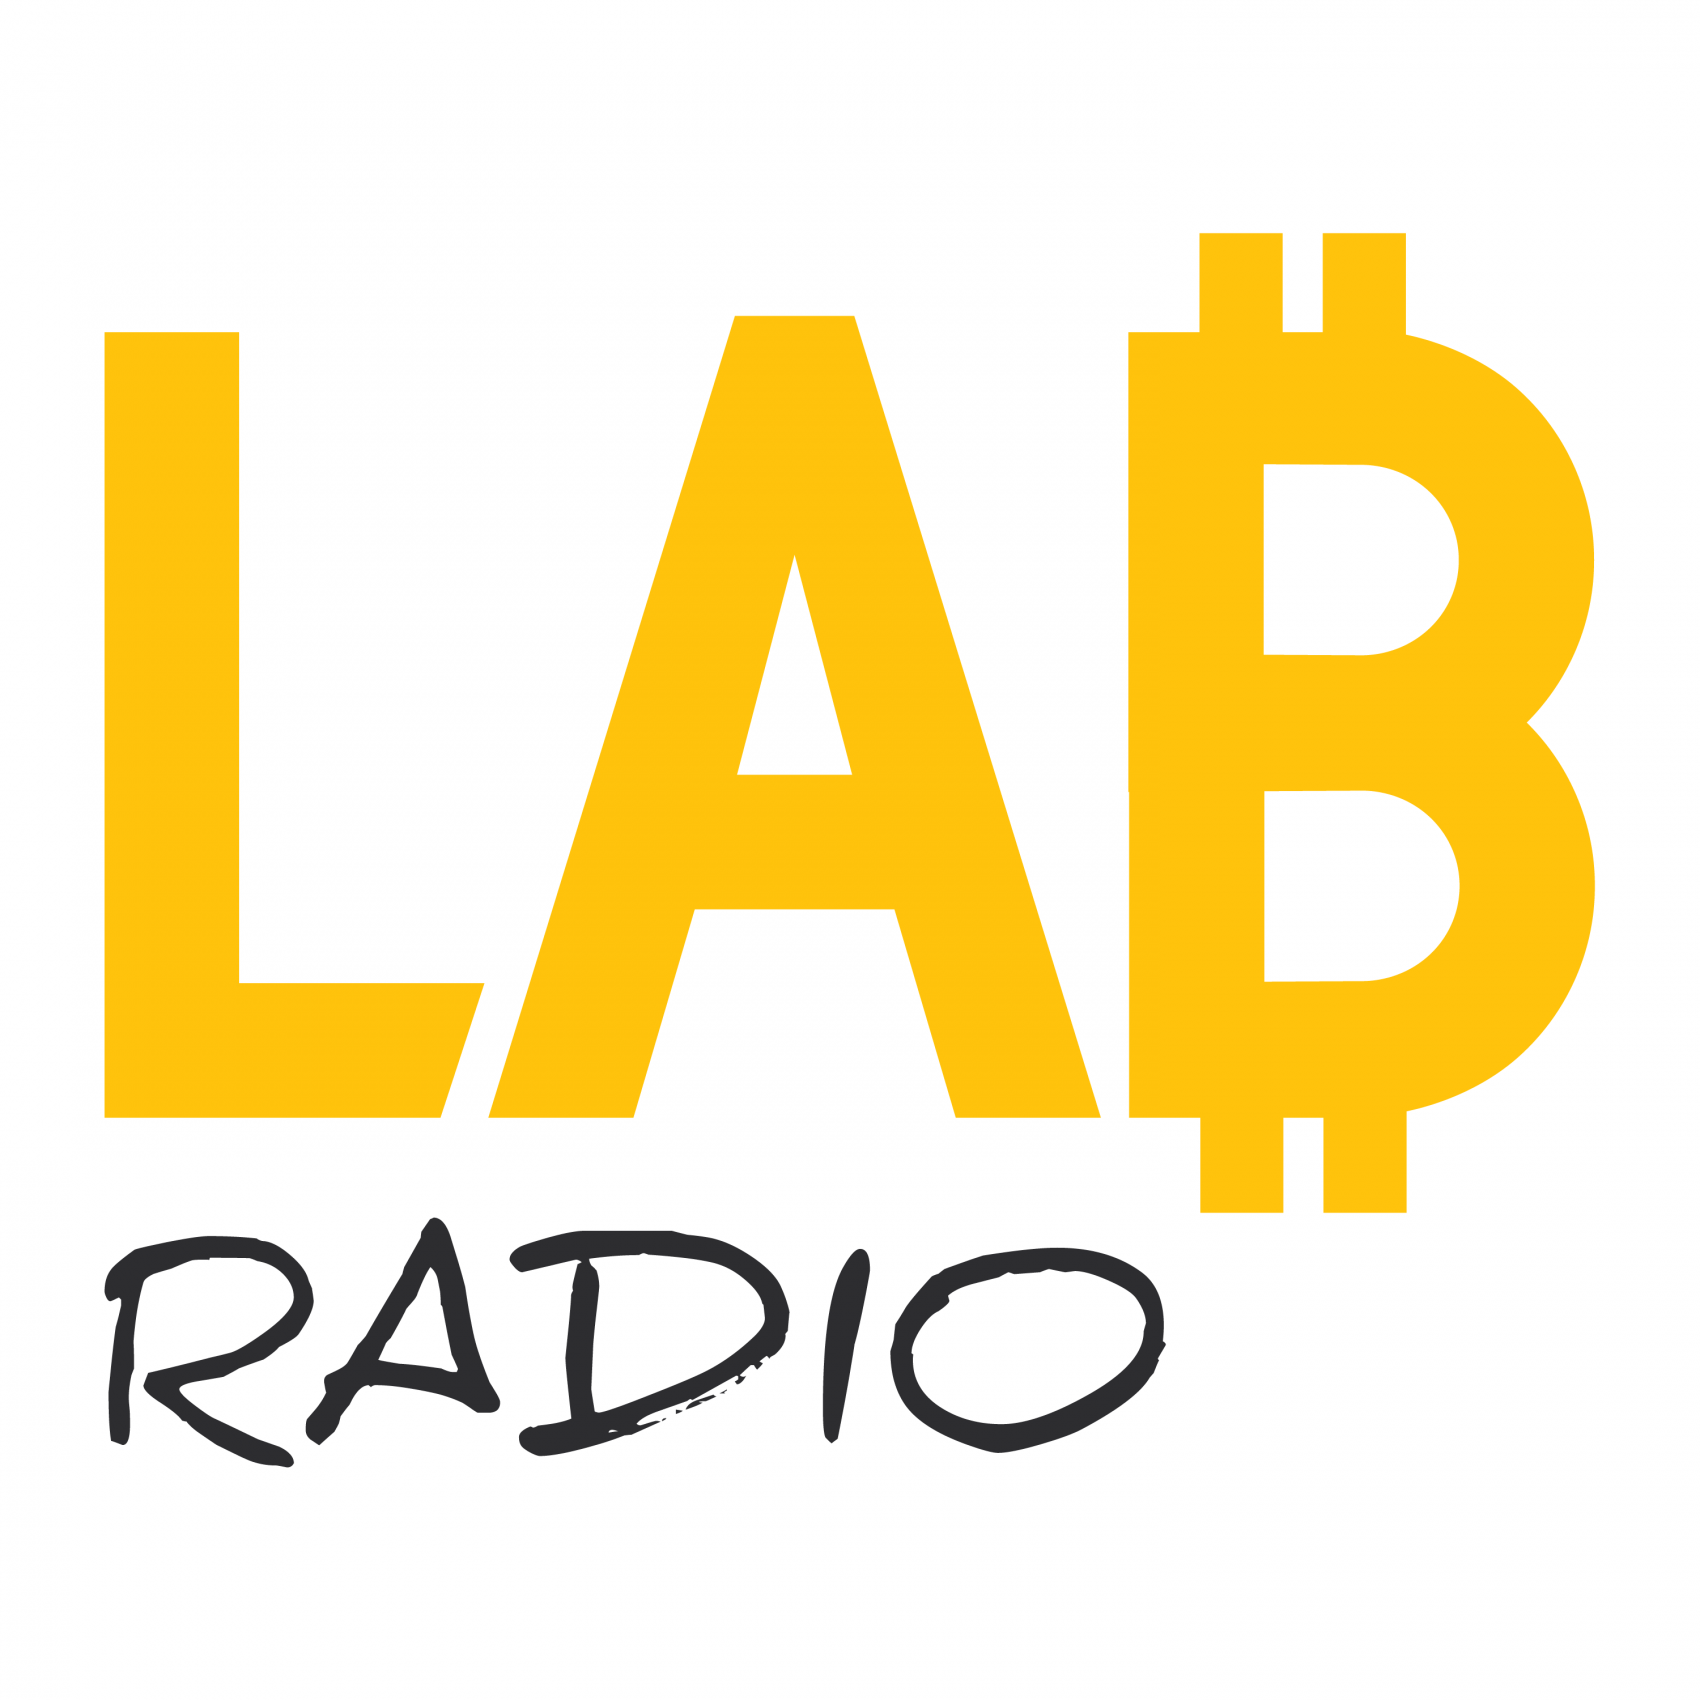 LAB Radio logo (yellow and black letters and white background)